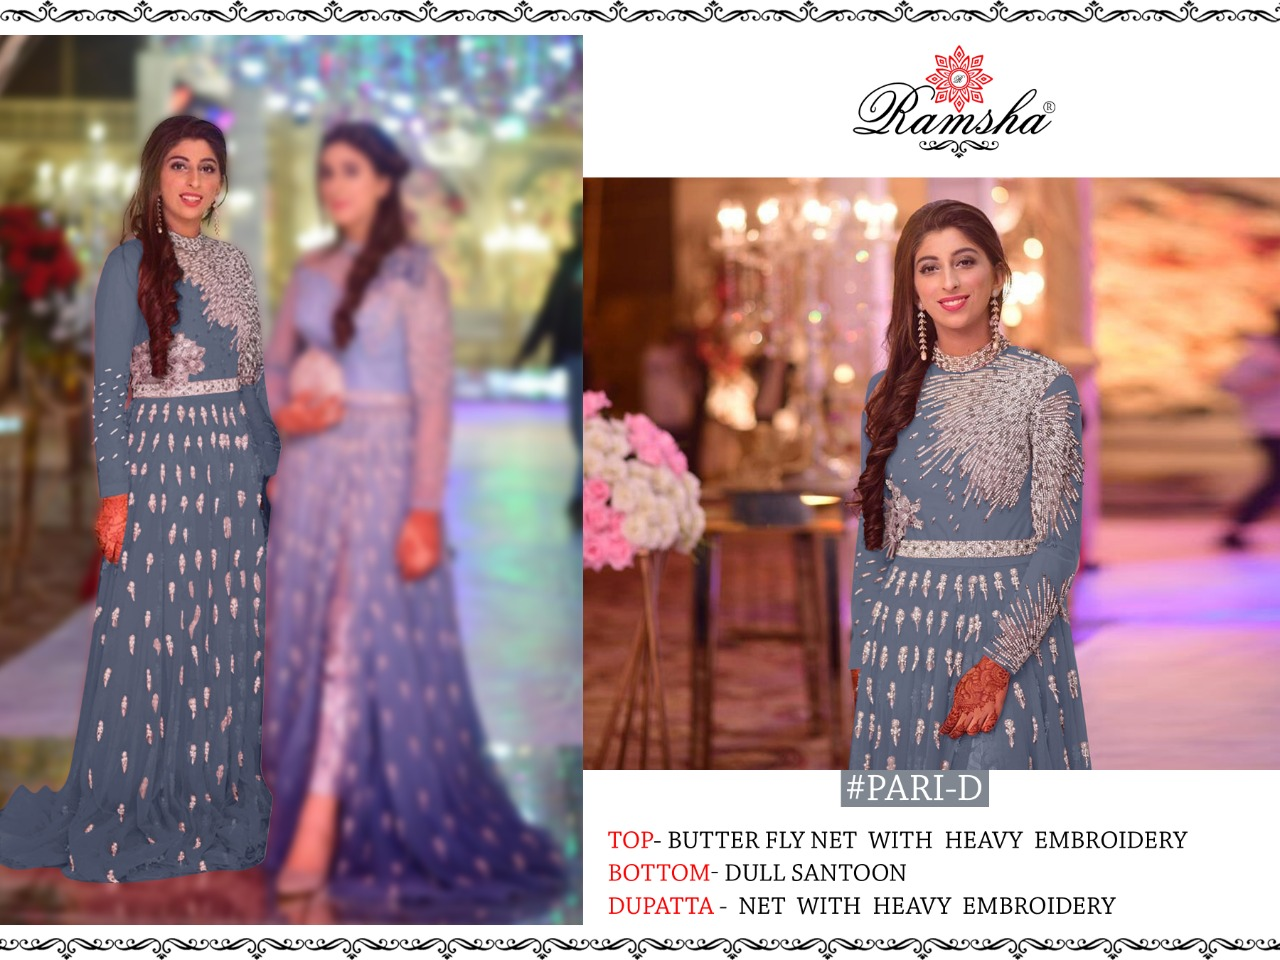 Ramsha Pari Net With Heavy Embroidery With Hand Work Pakistani Suits Collection At Wholesale Rate